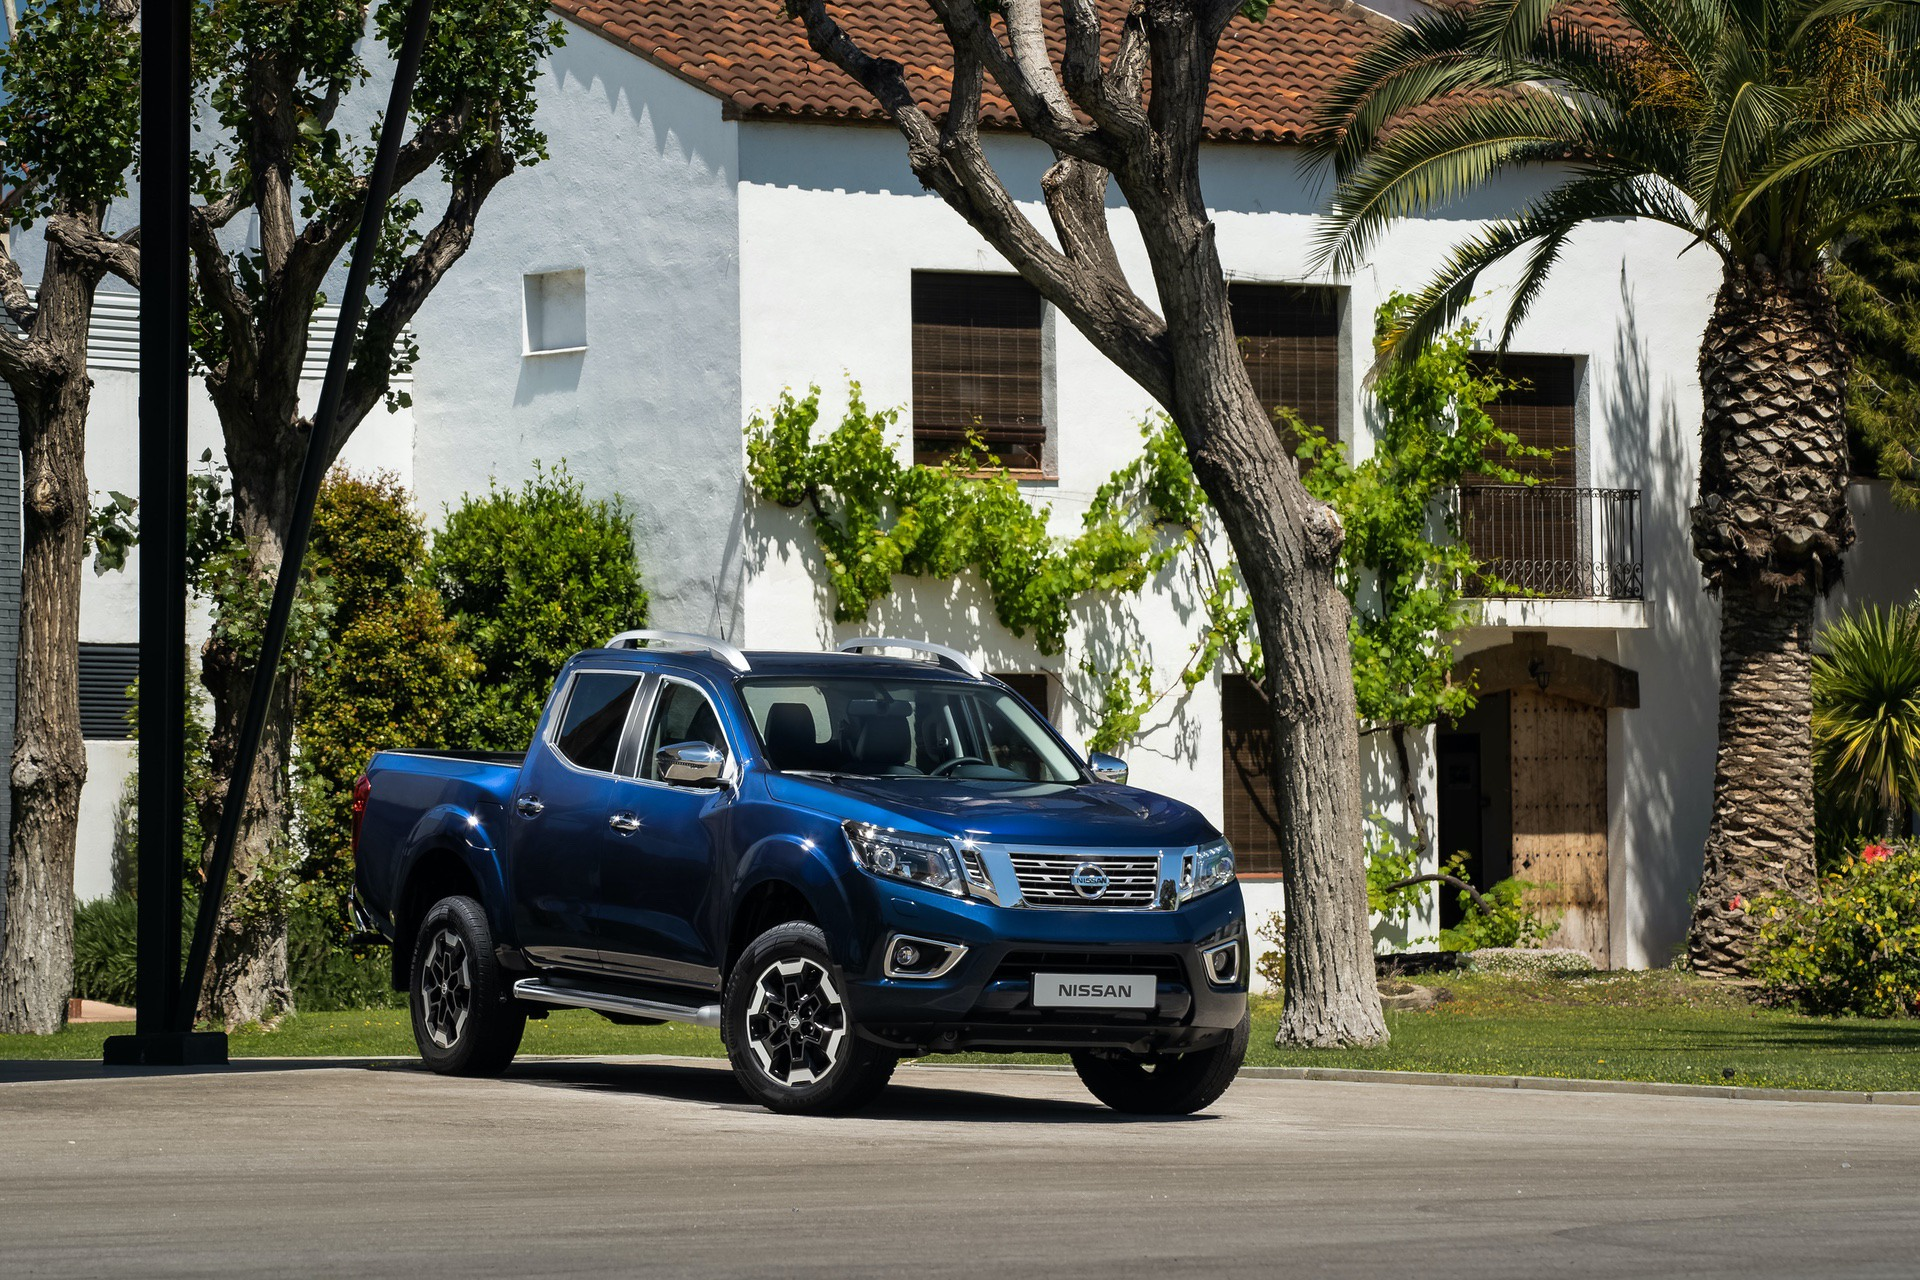 Nissan-Navara-Double-Cab-Blue-Front